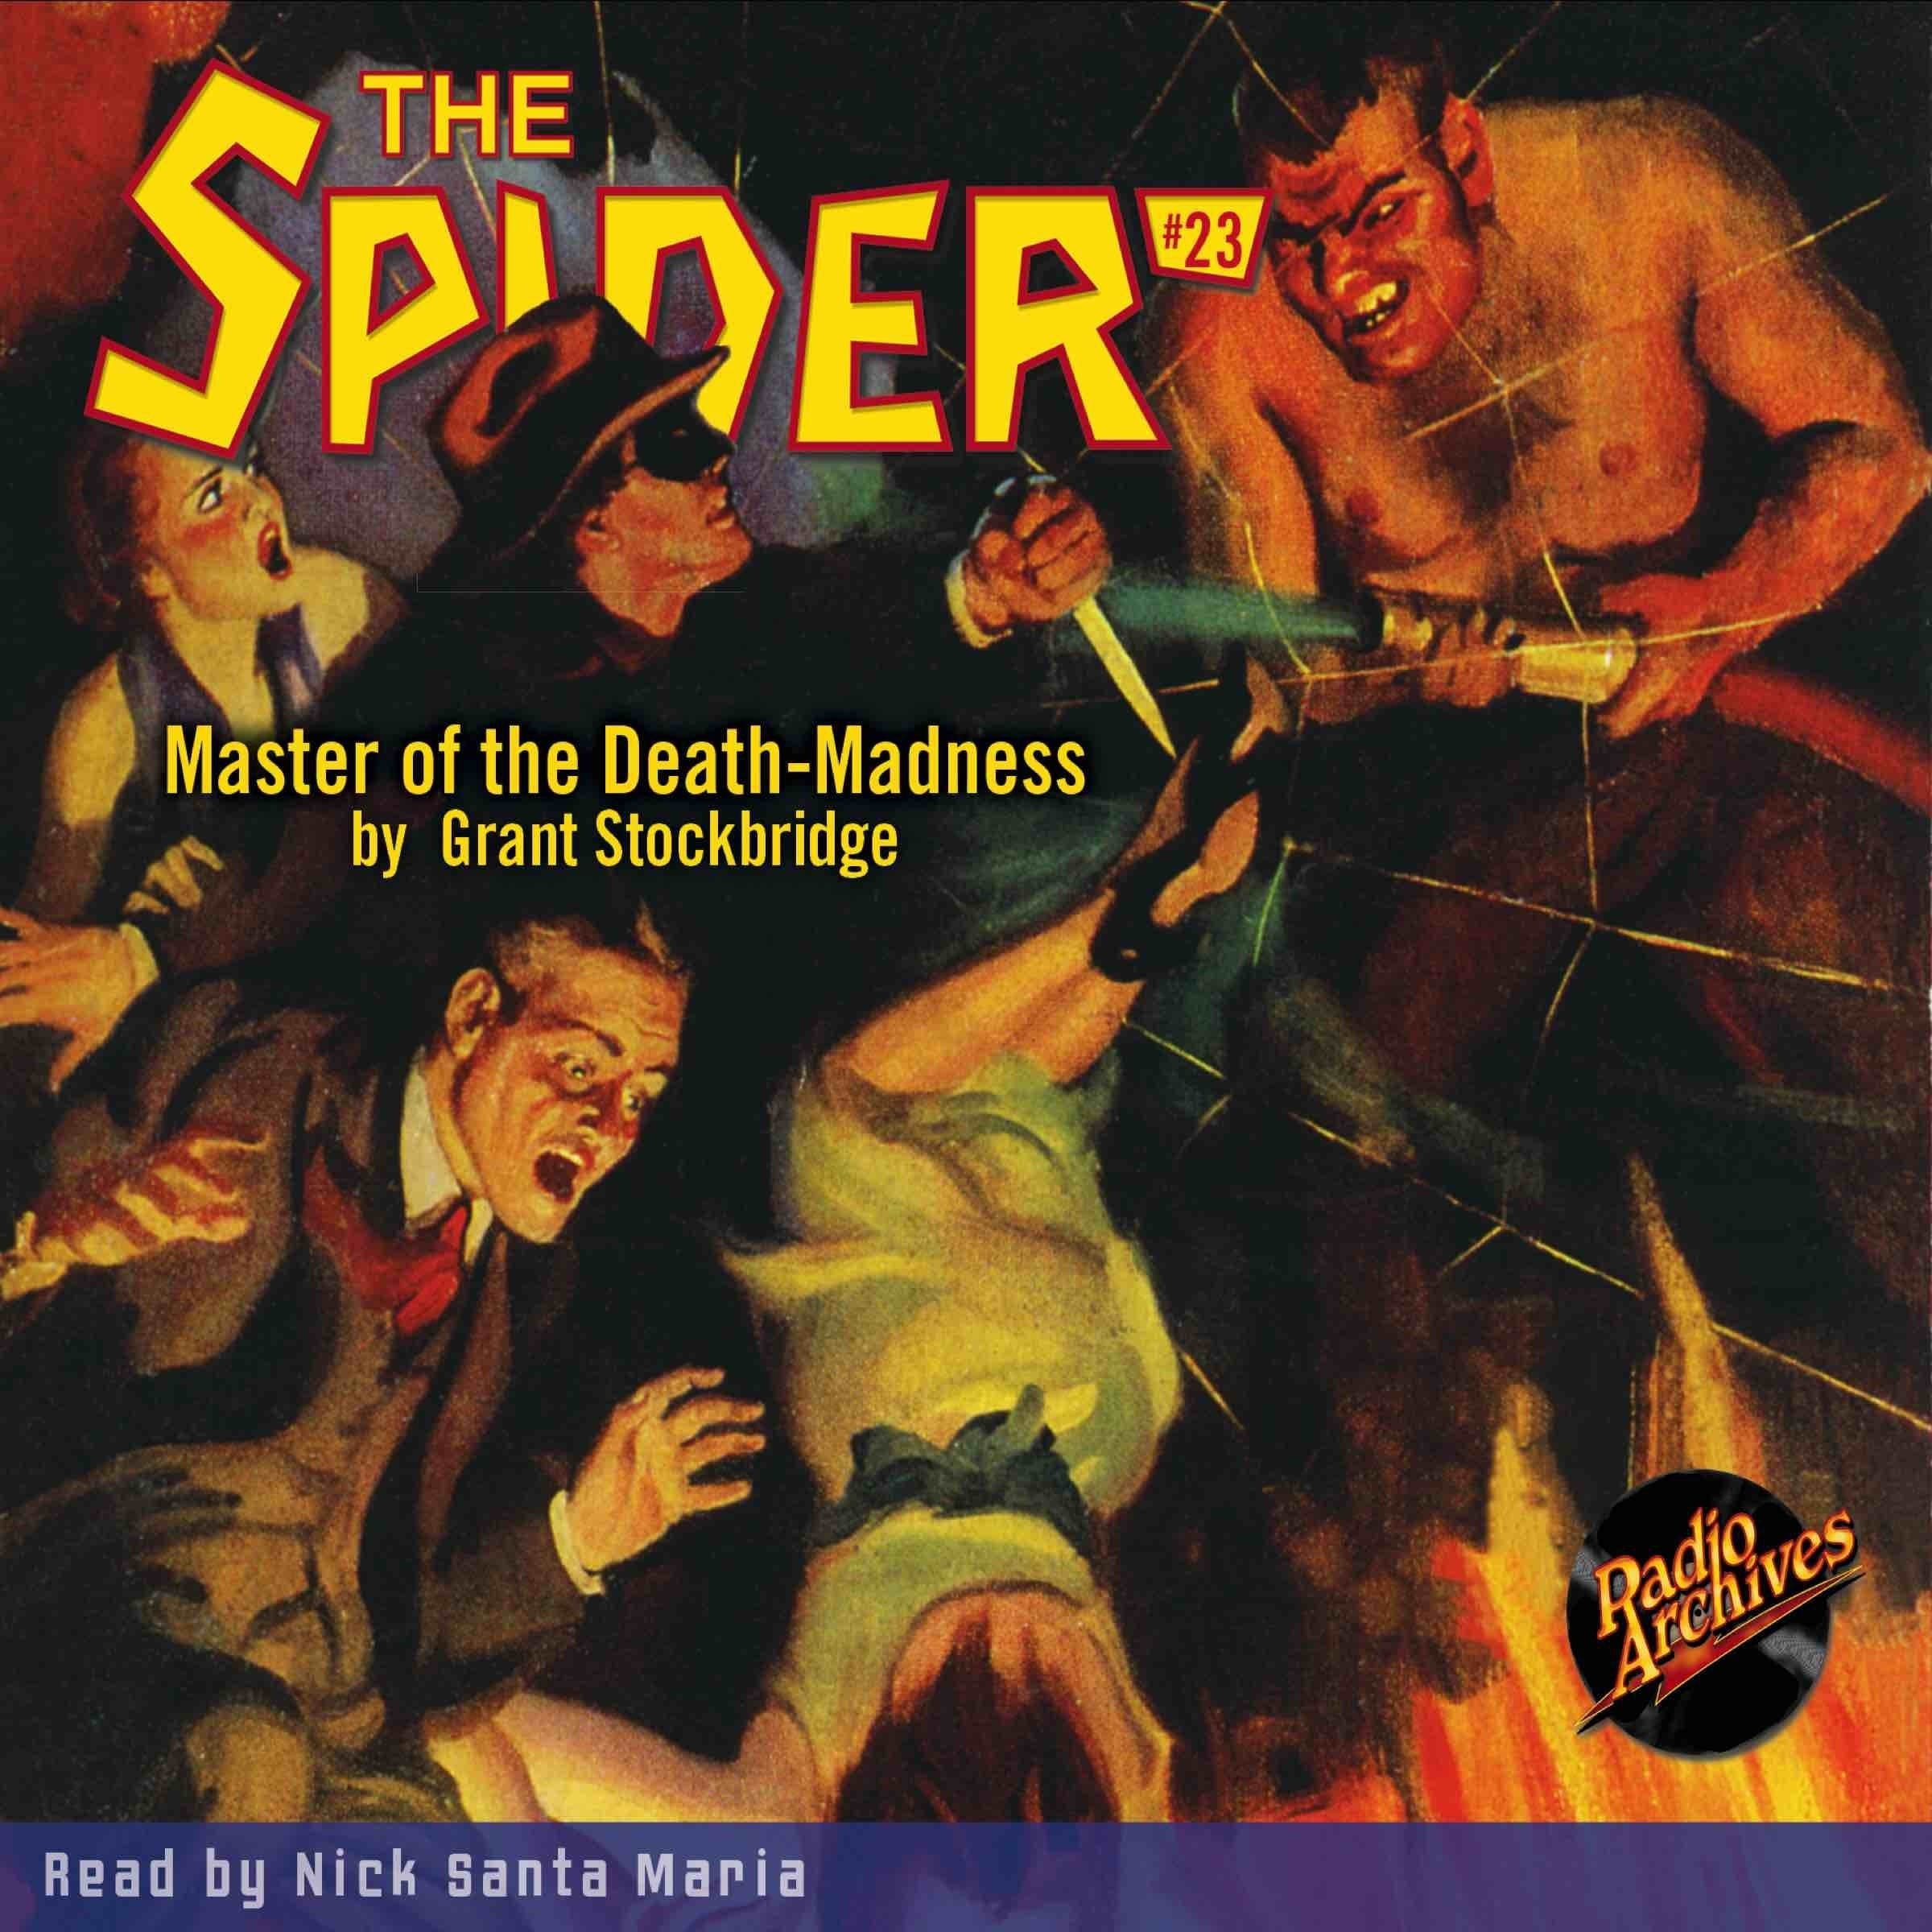 Printable Spider #23, The: Master of the Death-Madness Audiobook Cover Art